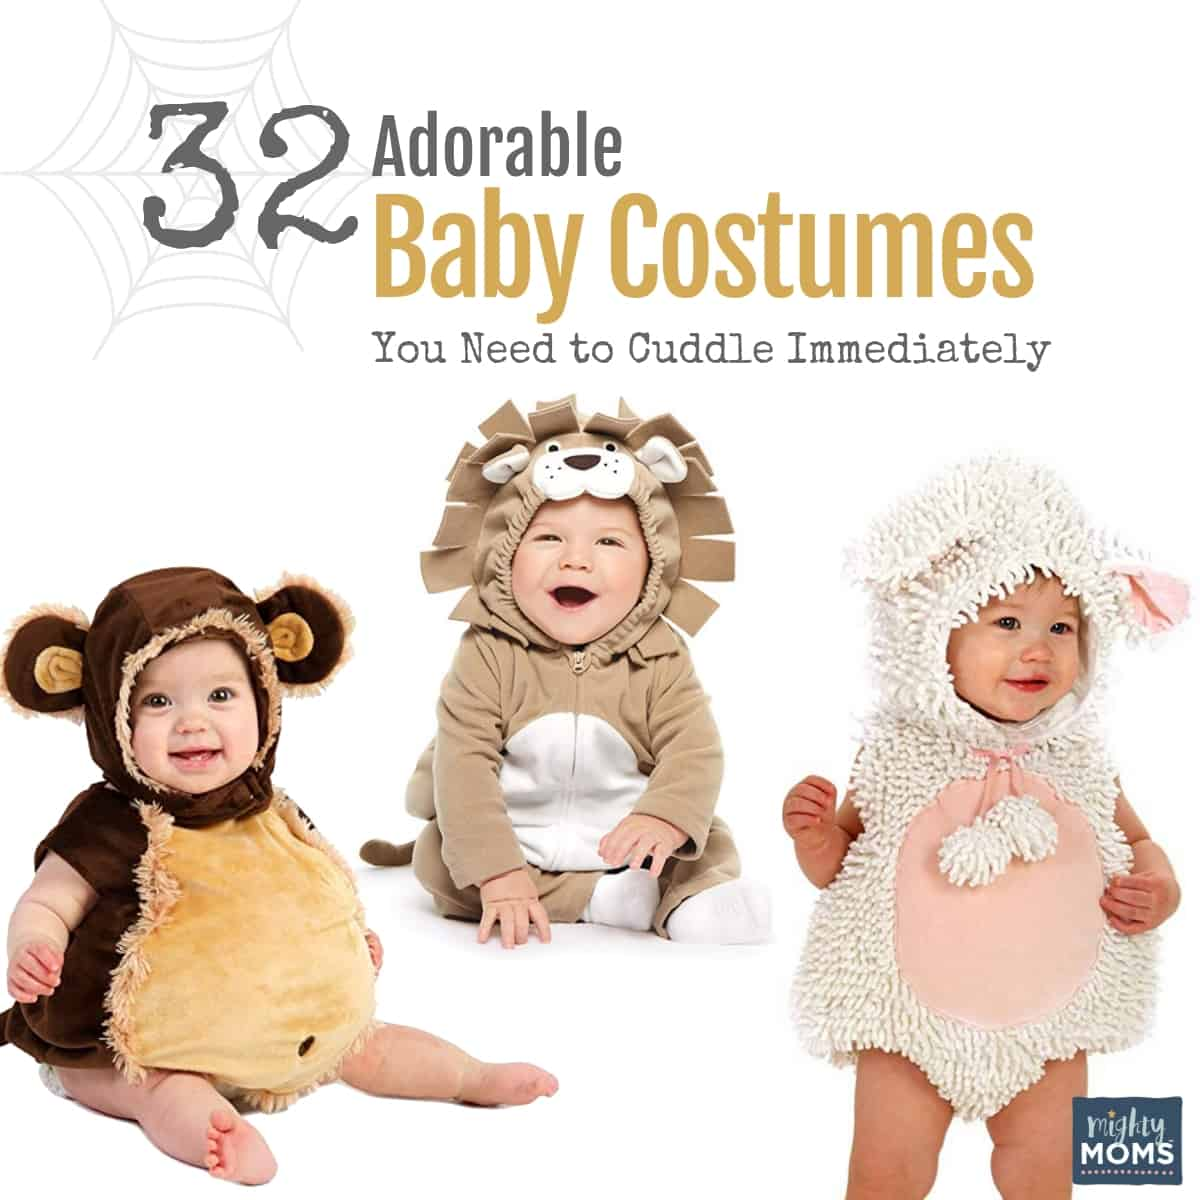 These Baby Costumes Need to be Cuddled - MightyMoms.club